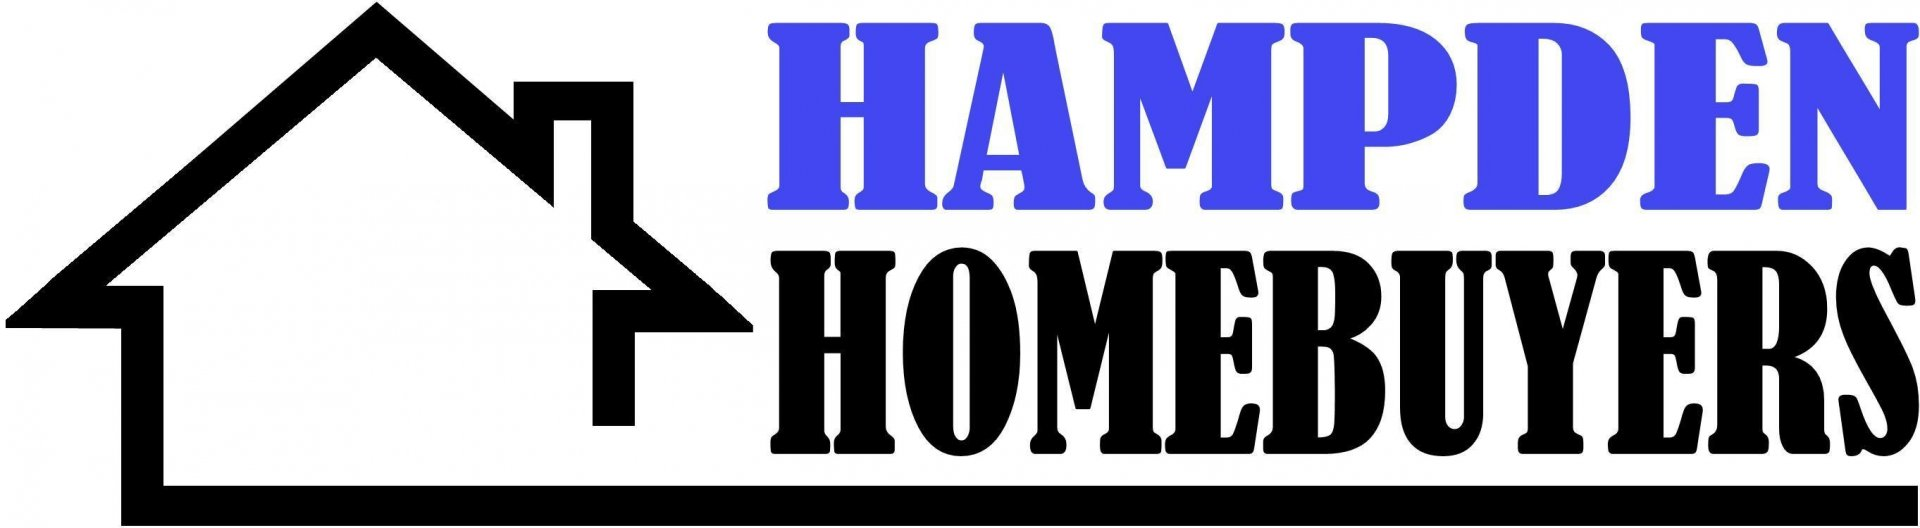 Hampden Homebuyers  logo